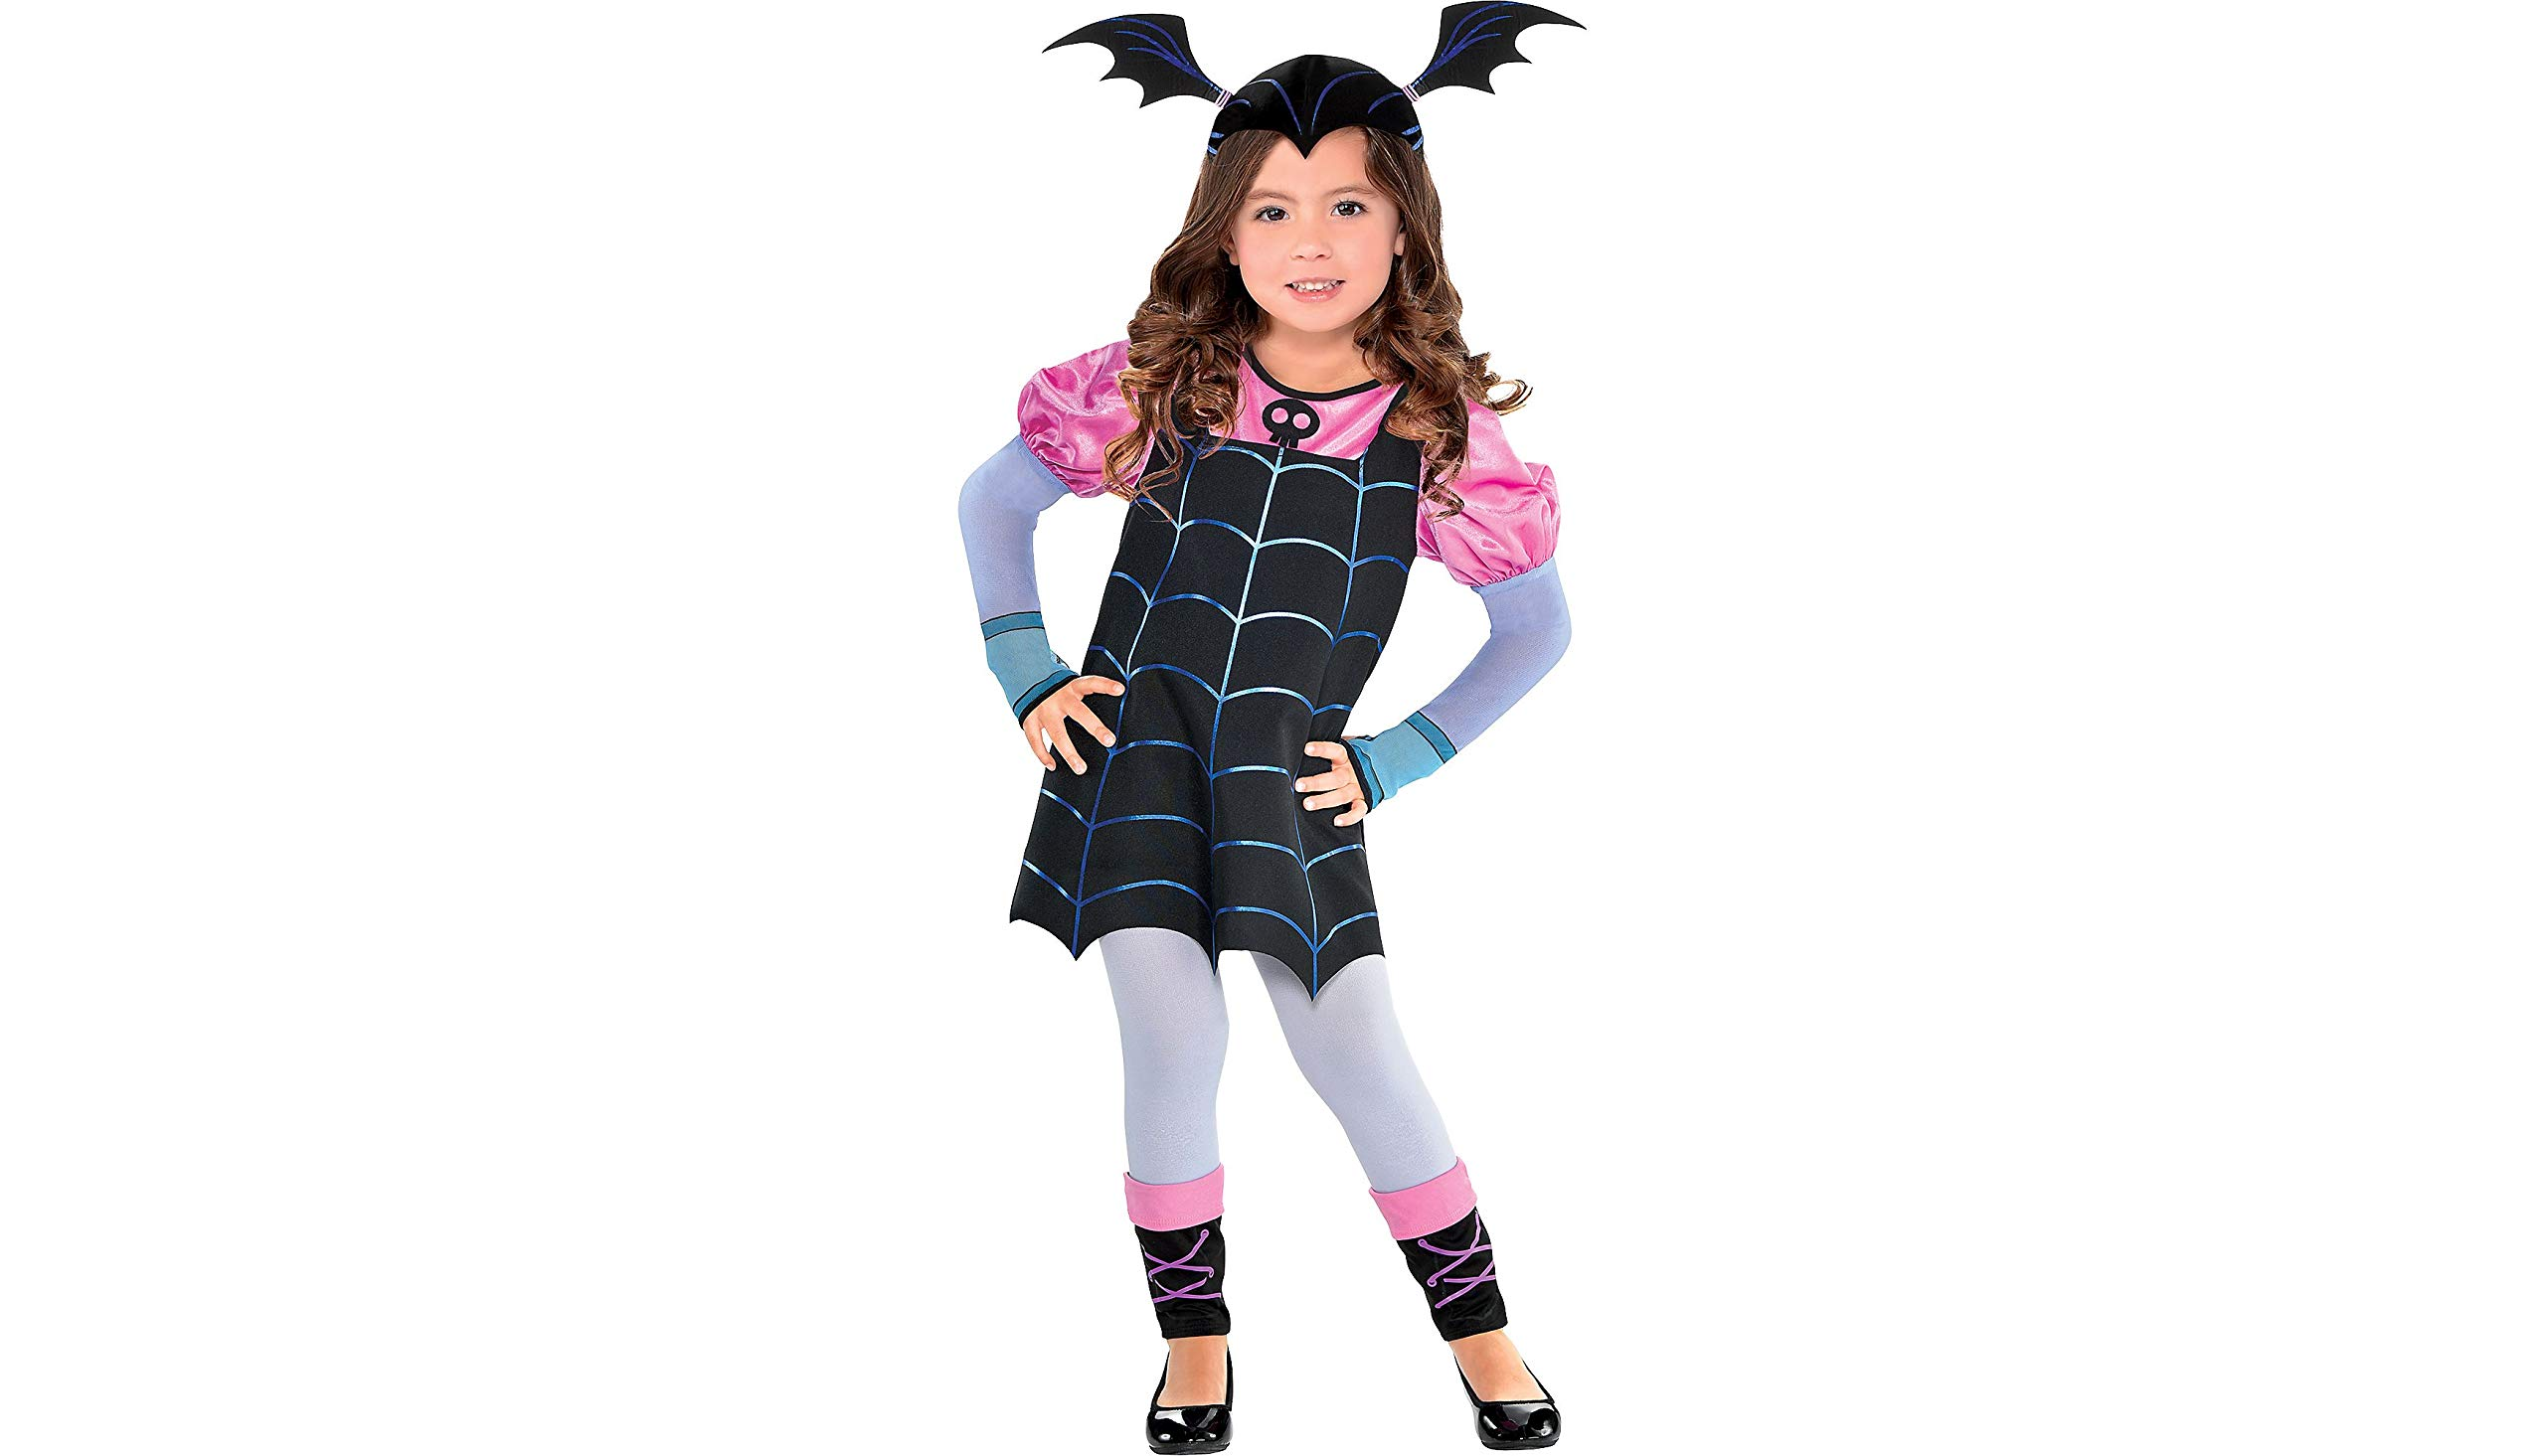 Vampirina Vee Halloween Costume for Girls, Small, with Included Accessories, by Party City